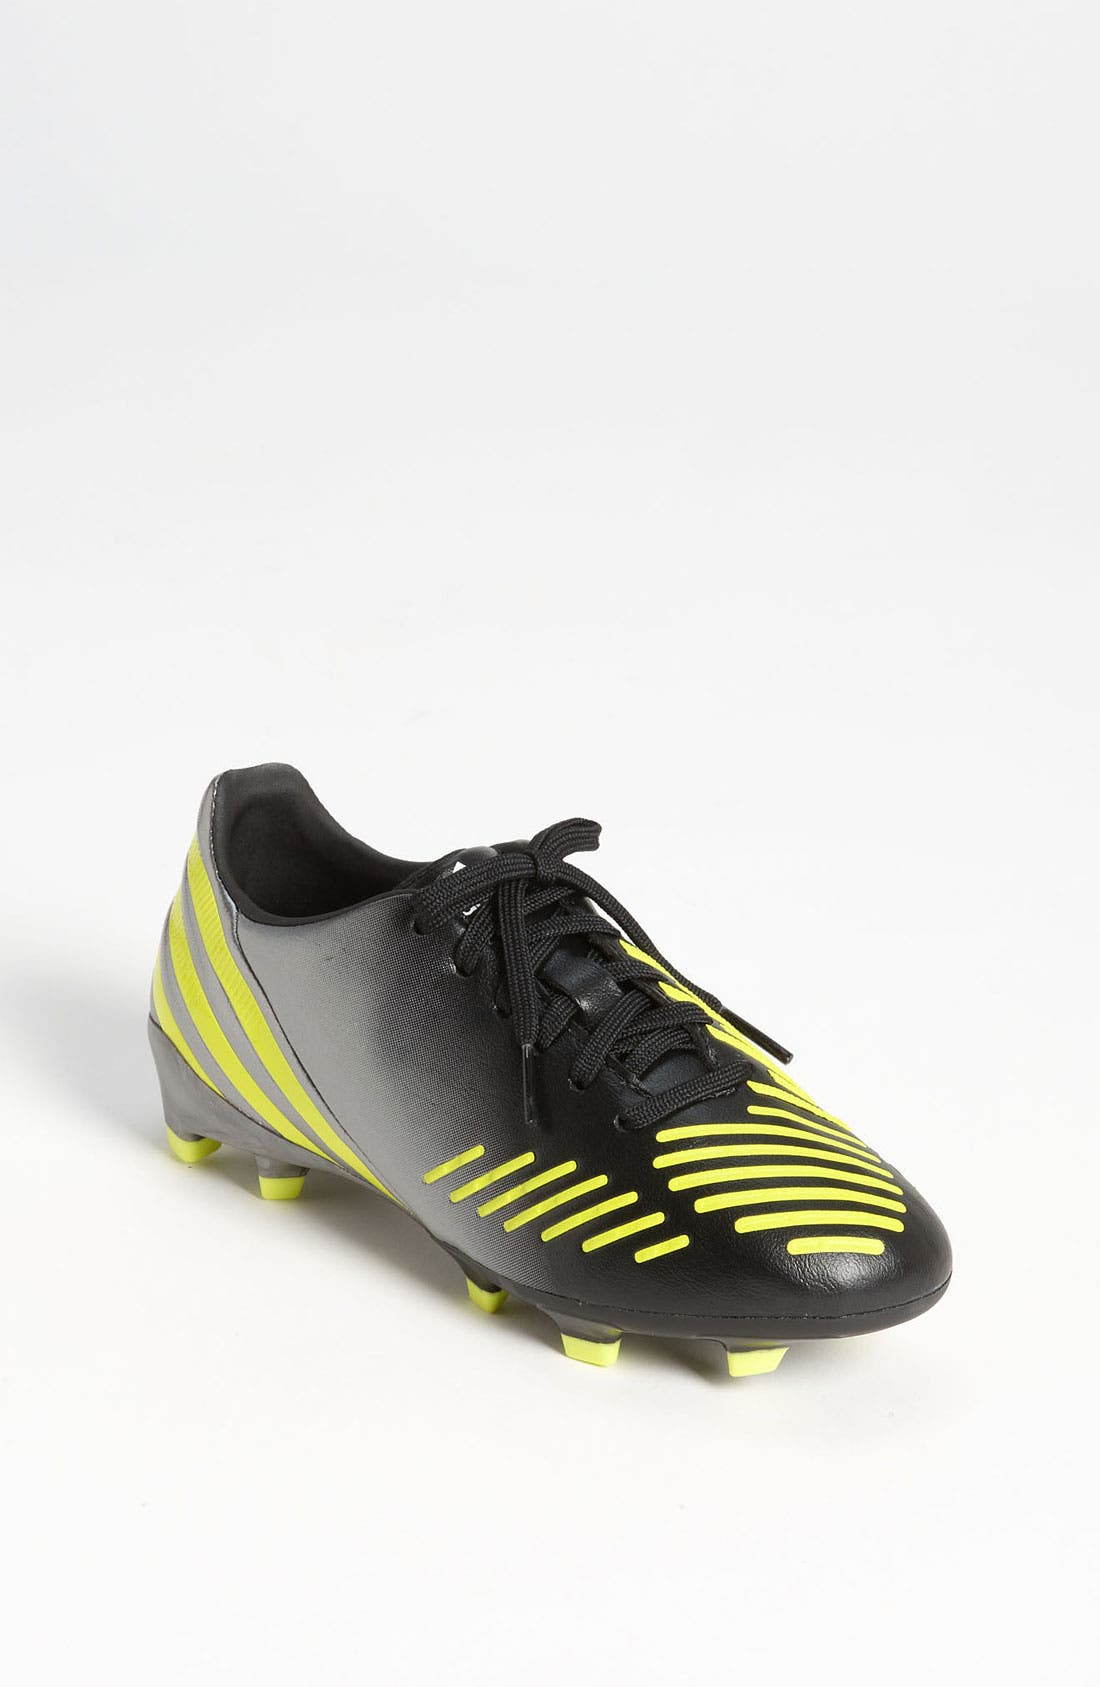 Main Image - adidas 'Predator Absolado LZ TRX FG' Soccer Shoe (Toddler, Little Kid & Big Kid)